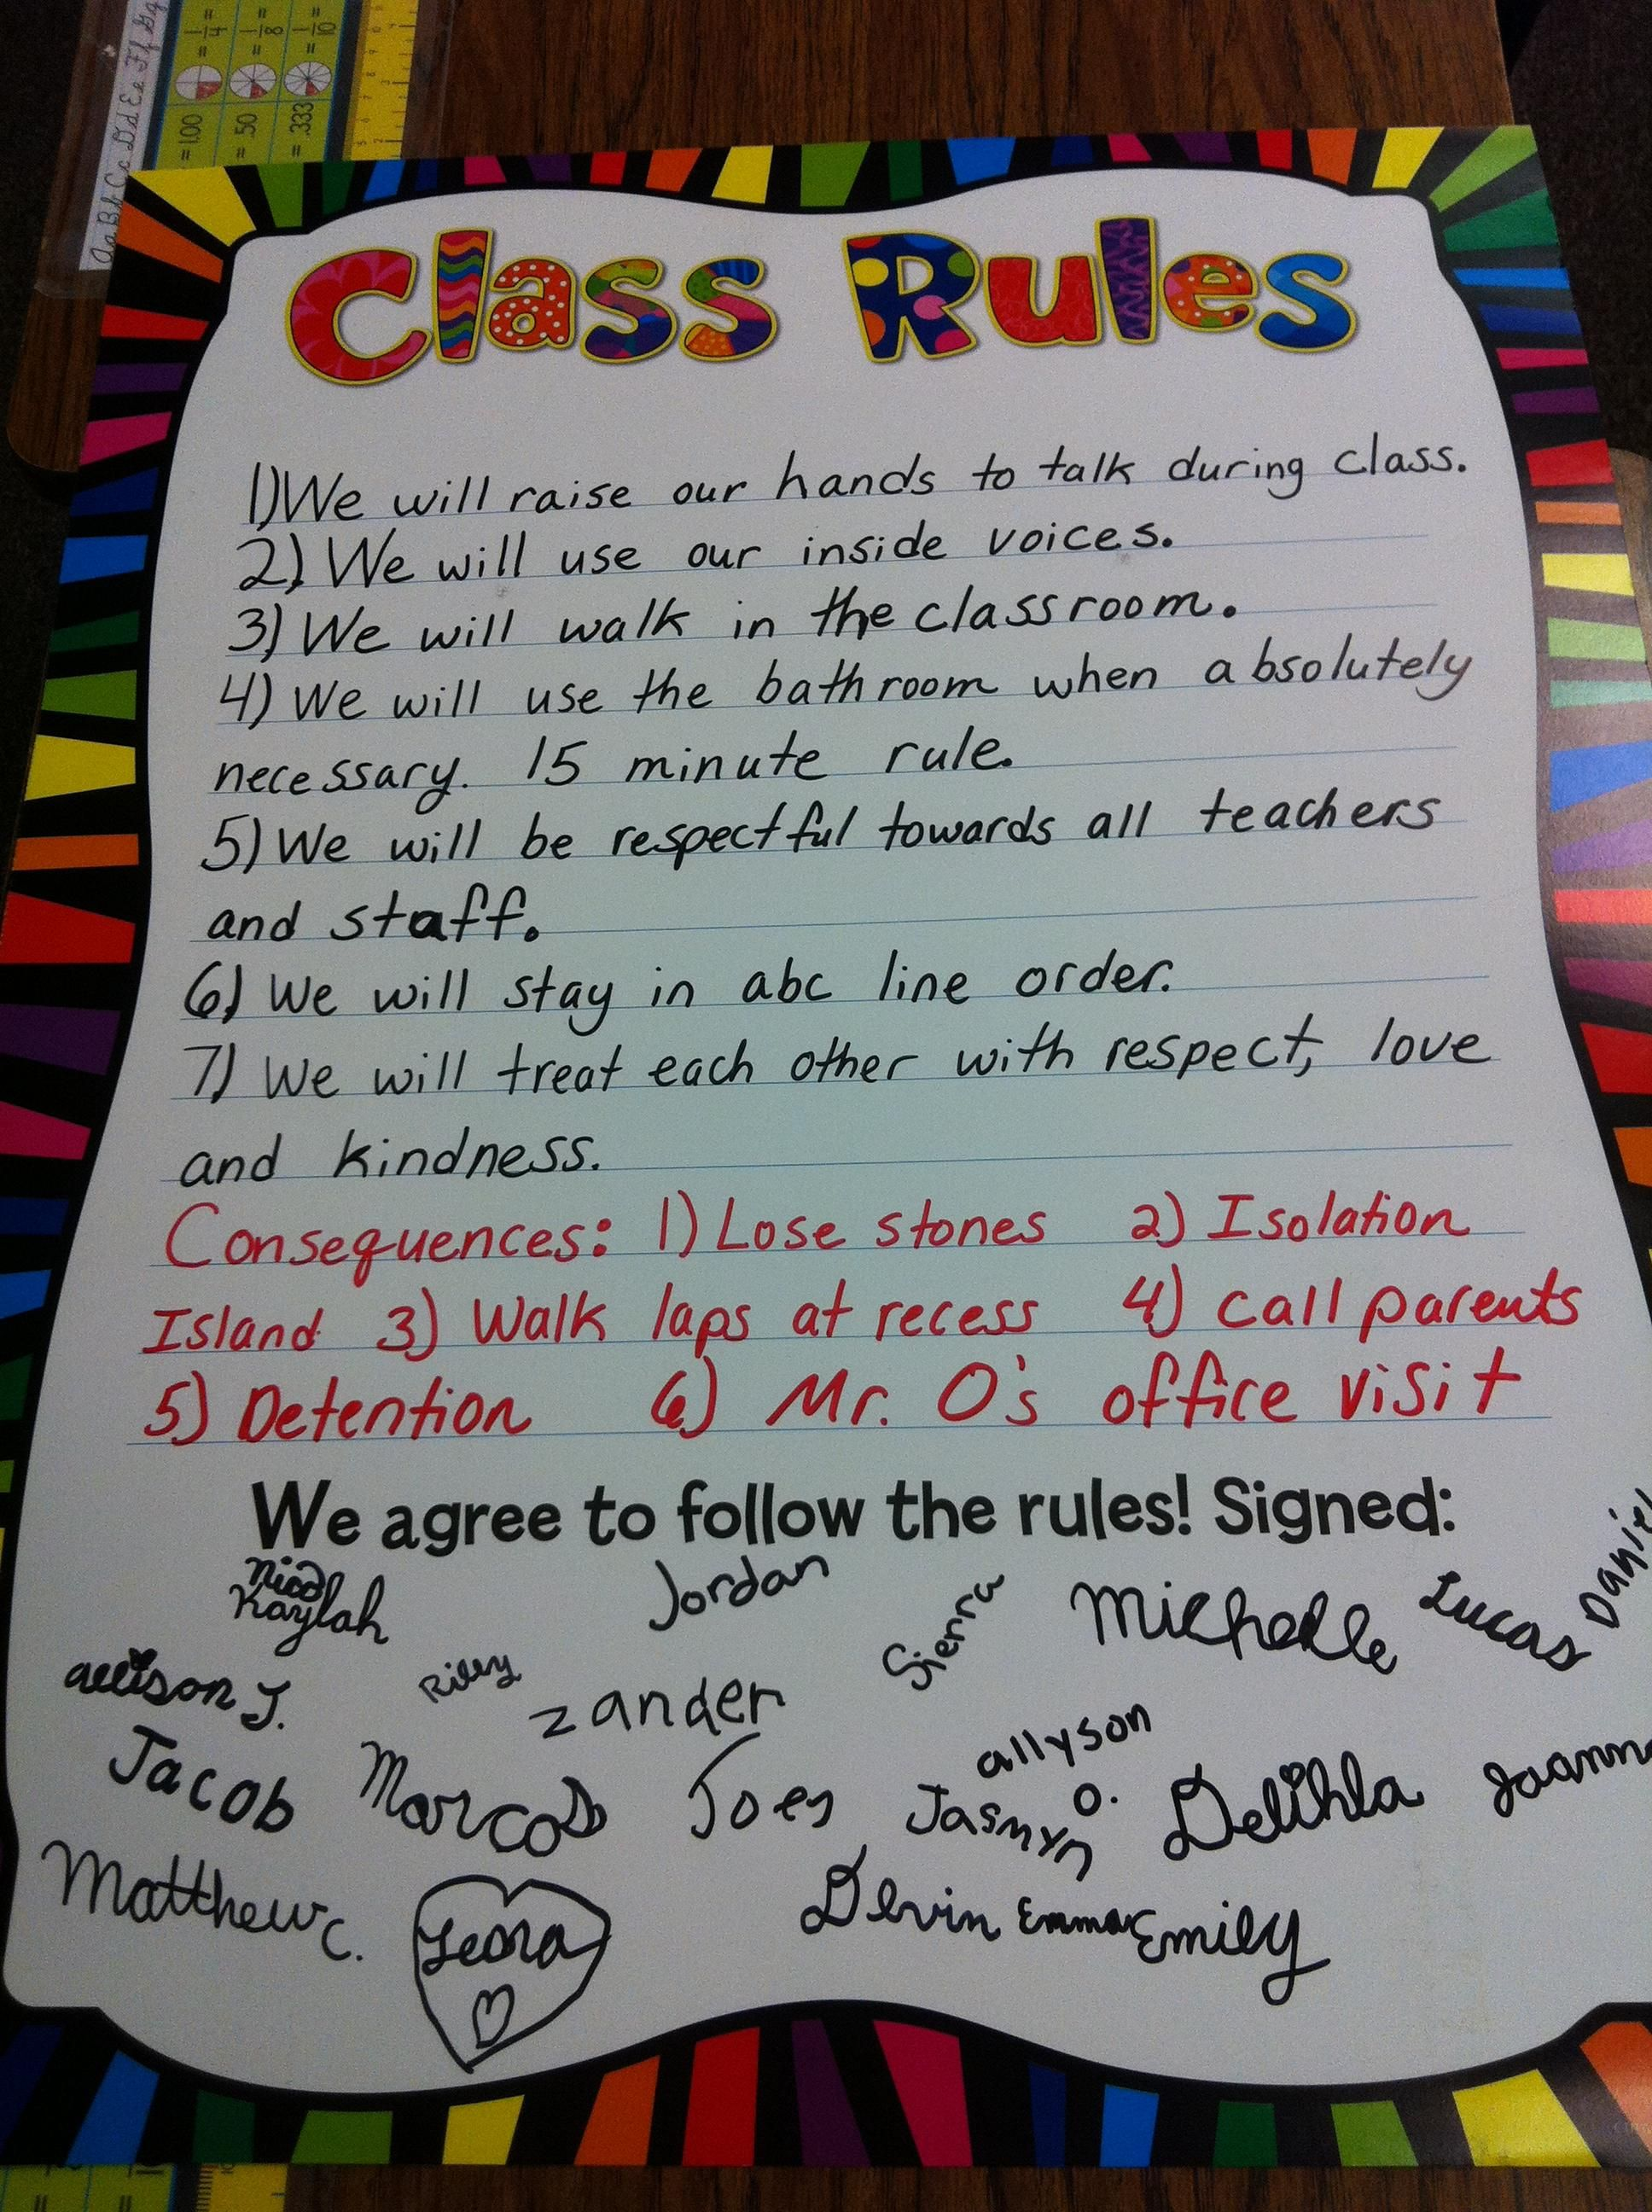 Classroom Conduct Contract Created And Signed By The Students This